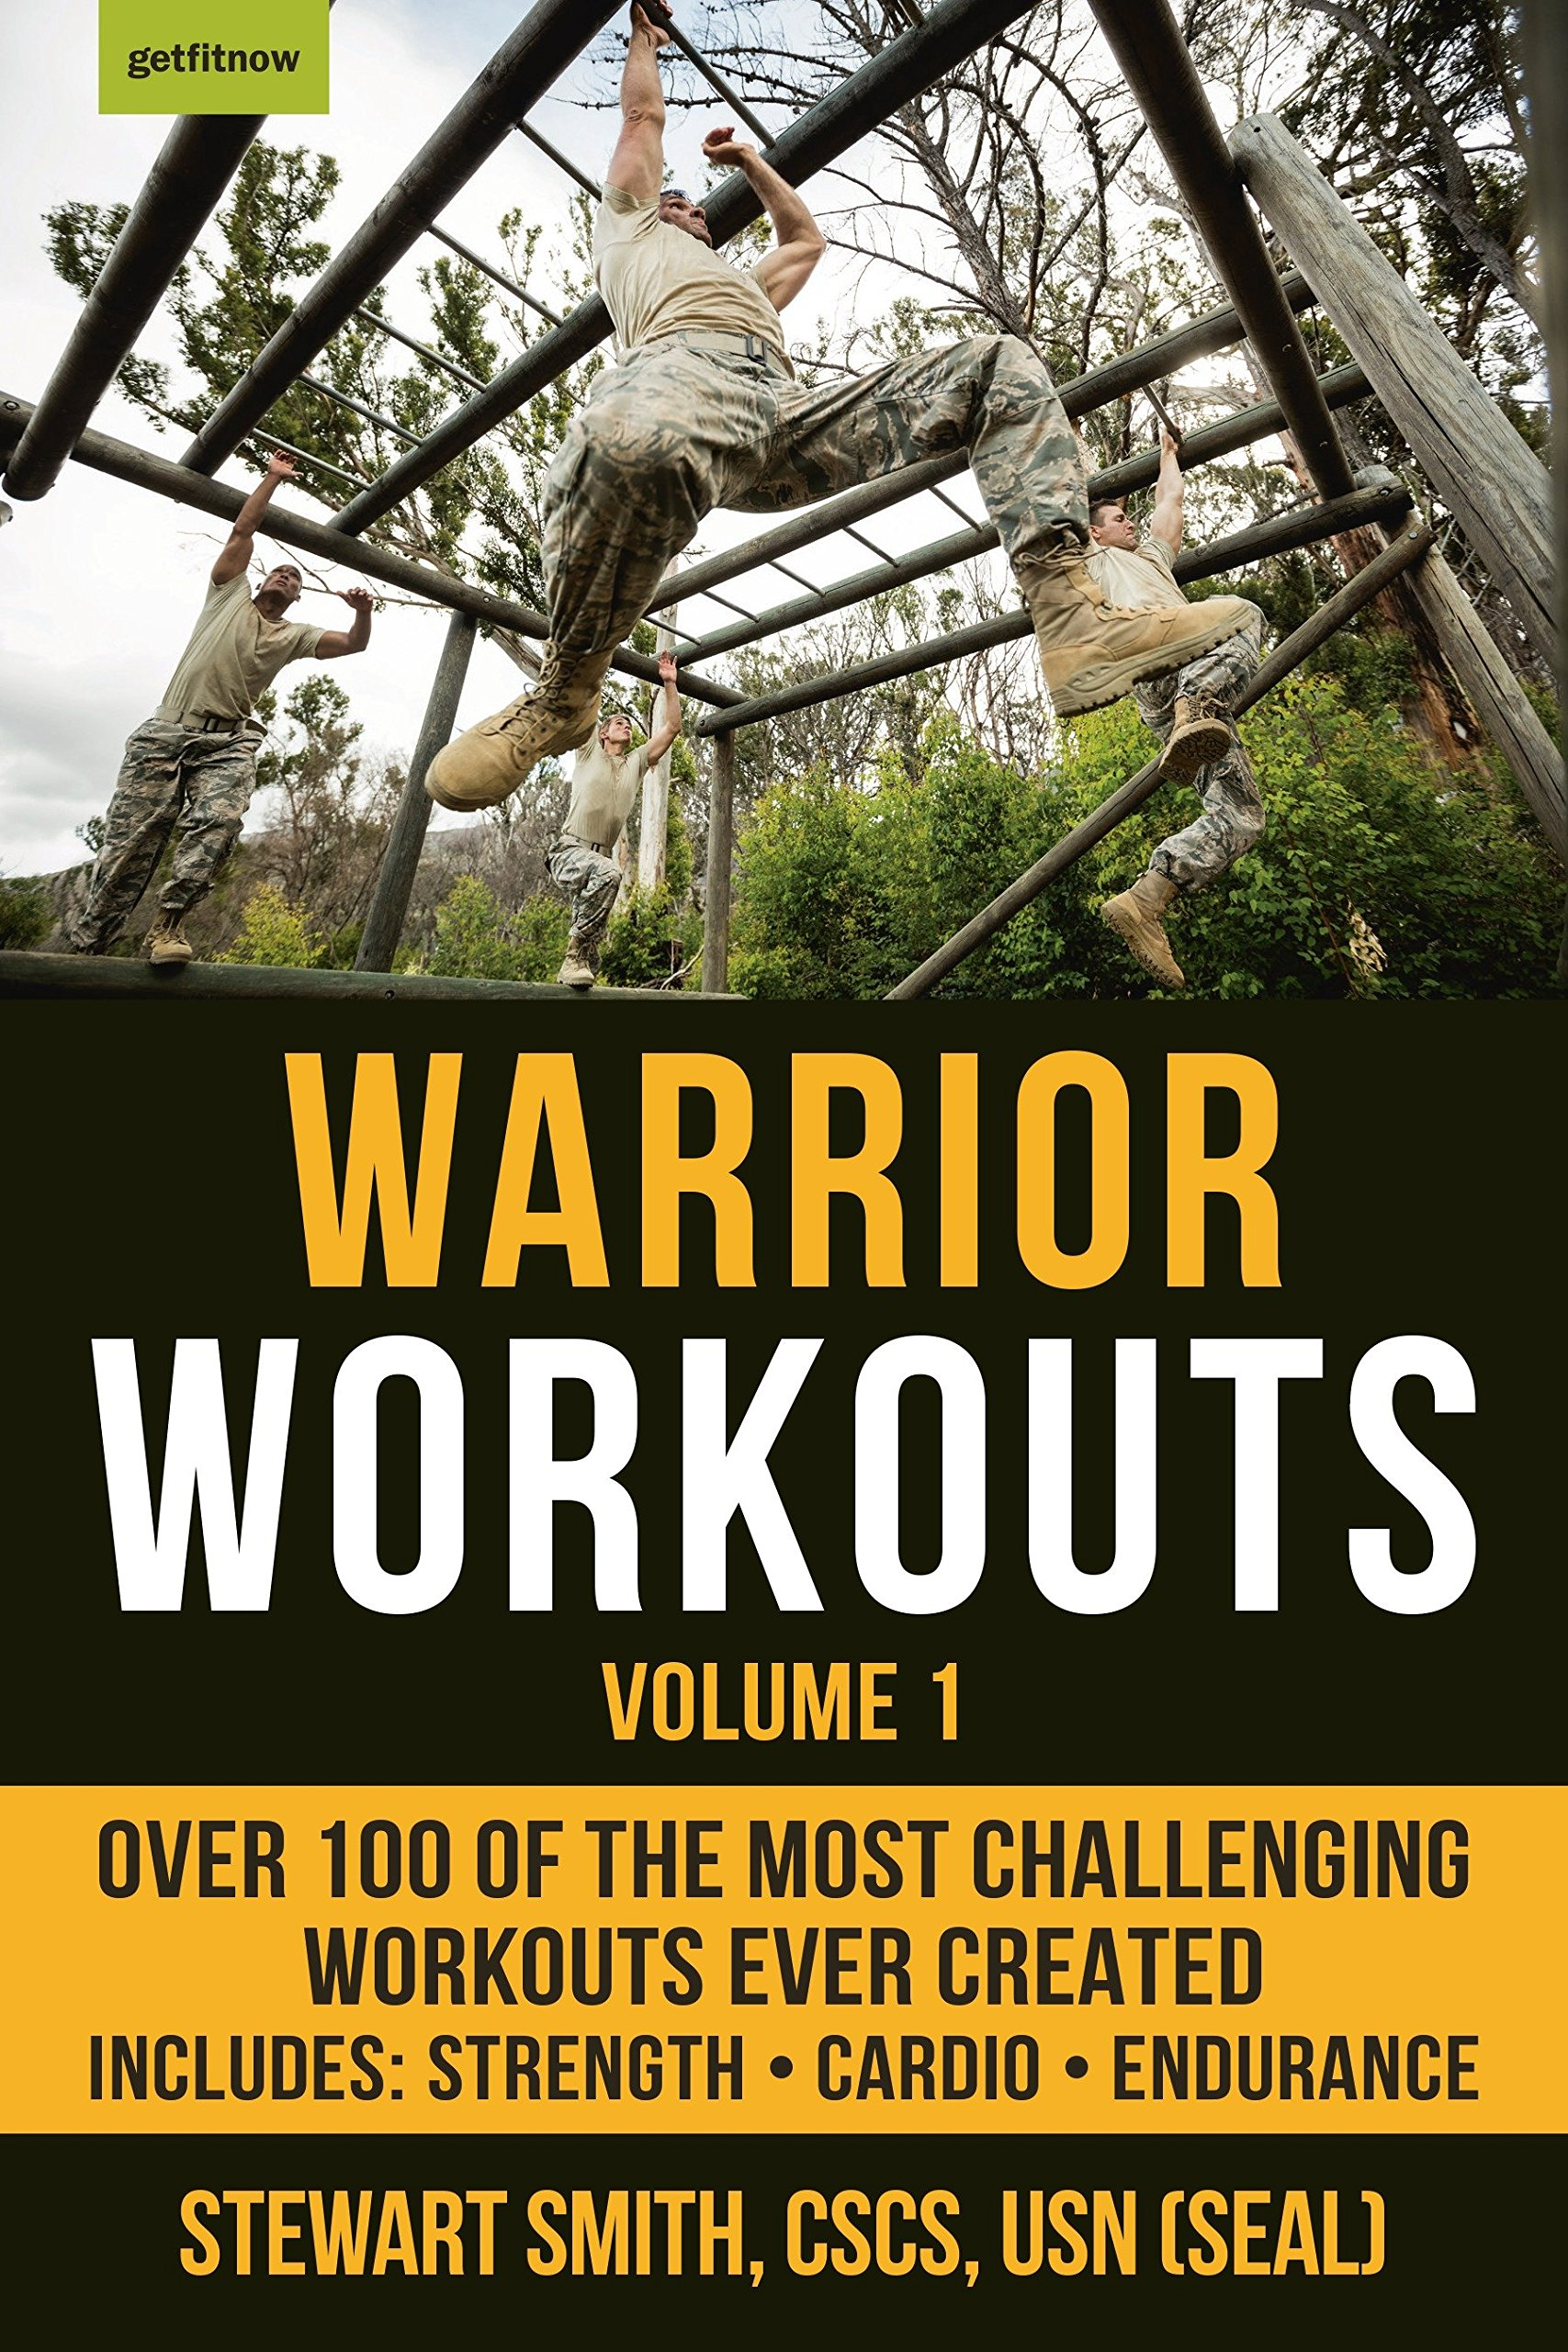 Warrior workouts volume 1: over 100 of the most challenging